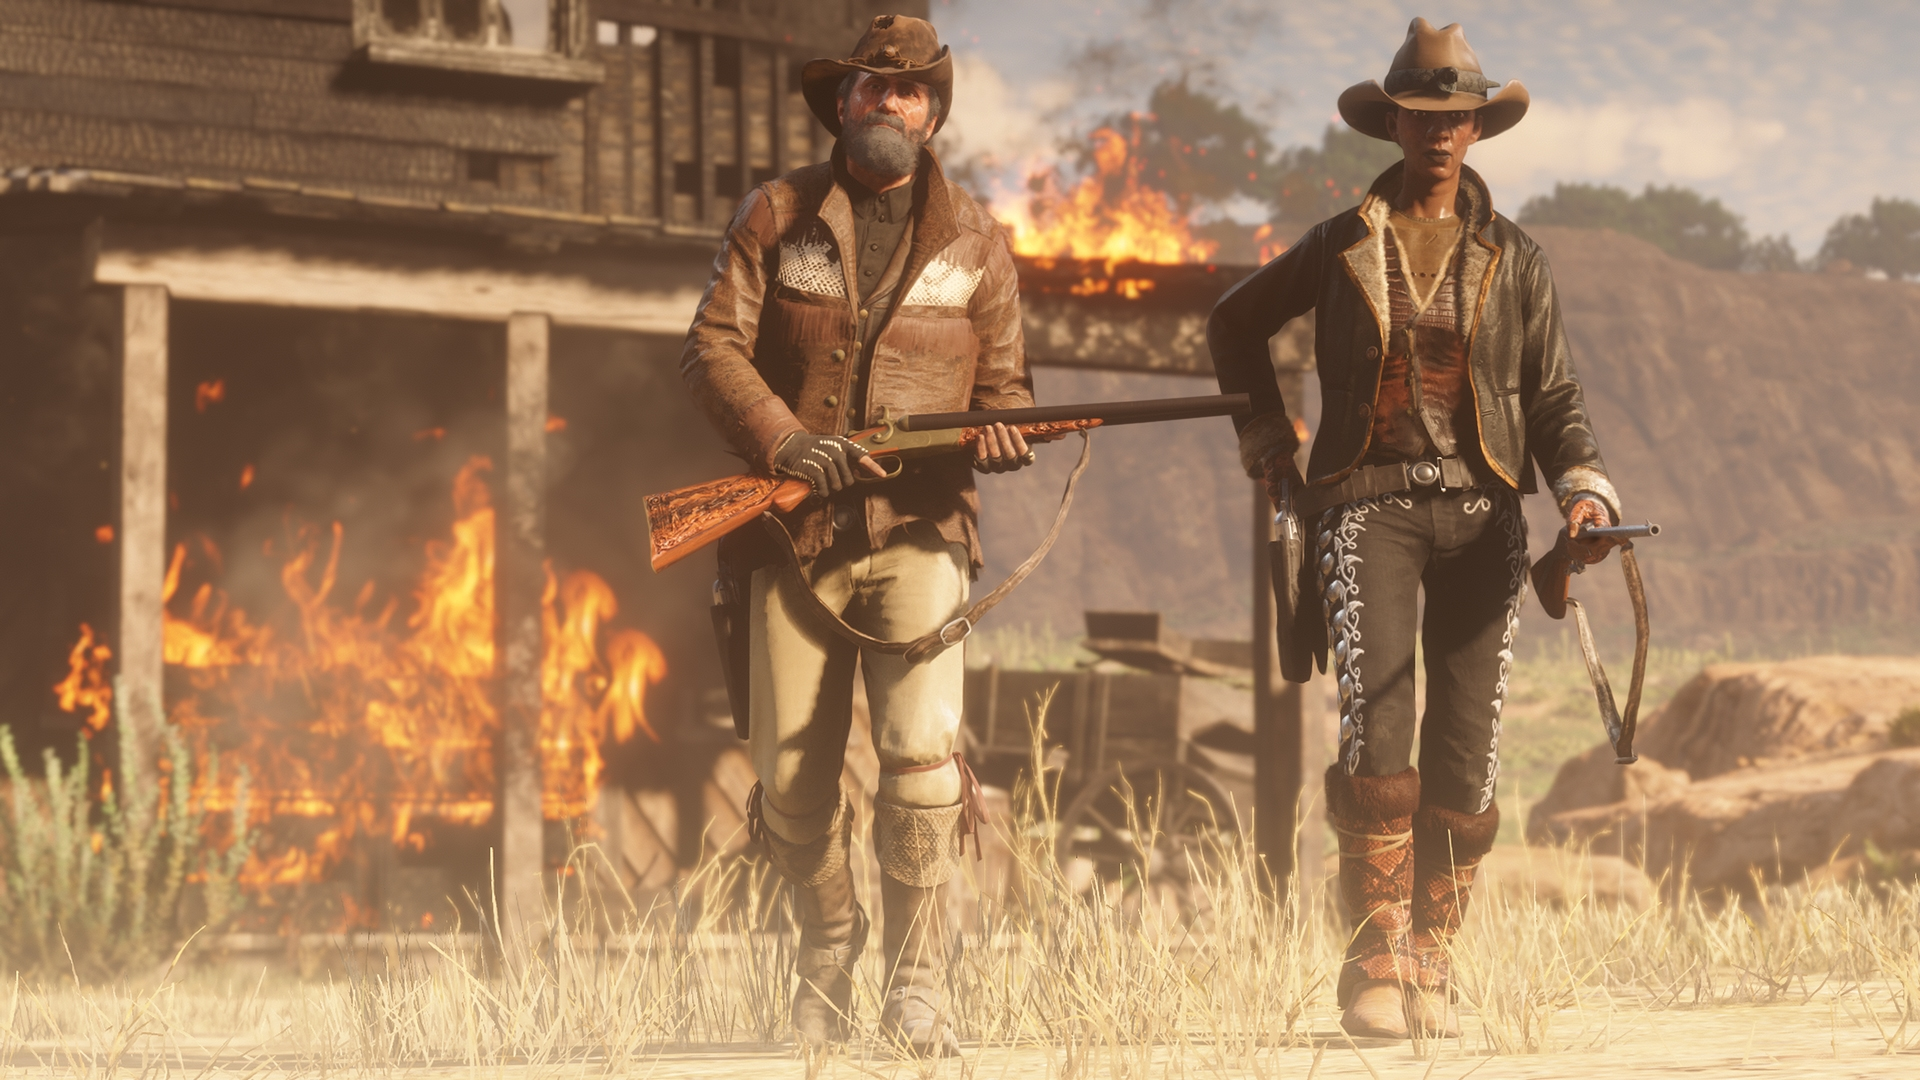 Red Dead Online: New Gameplay Modes, Weapons and Clothing coming February 26